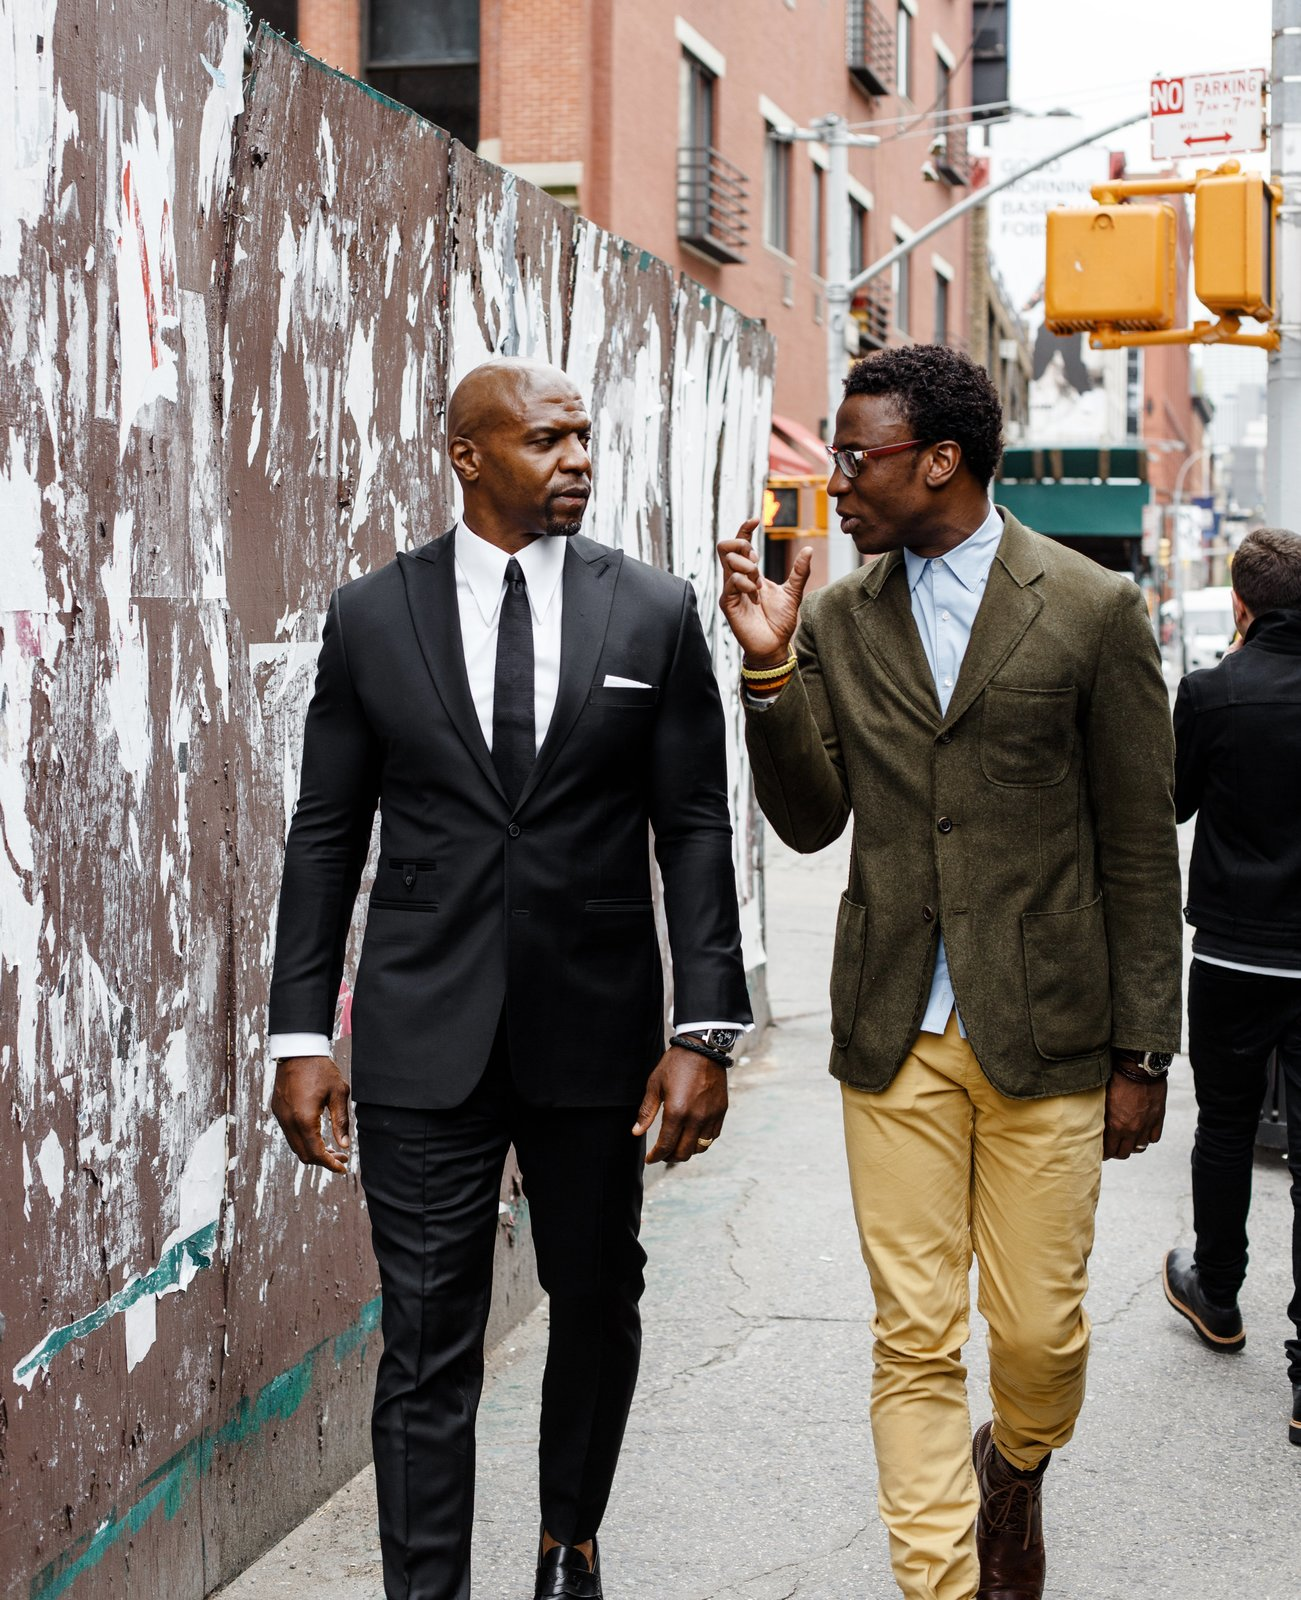 Actor Terry Crews, left, and designer Ini Archibong have a longstanding friendship based on shared ideals. In April 2016 they worked together to debut In The Secret Garden, a collection of furnishings conceived by Archibong, at the Milan furniture fair, a respected launching ground for burgeoning design industry players.  Photo 2 of 5 in Designer Ini Archibong Finds A Patron in Actor Terry Crews